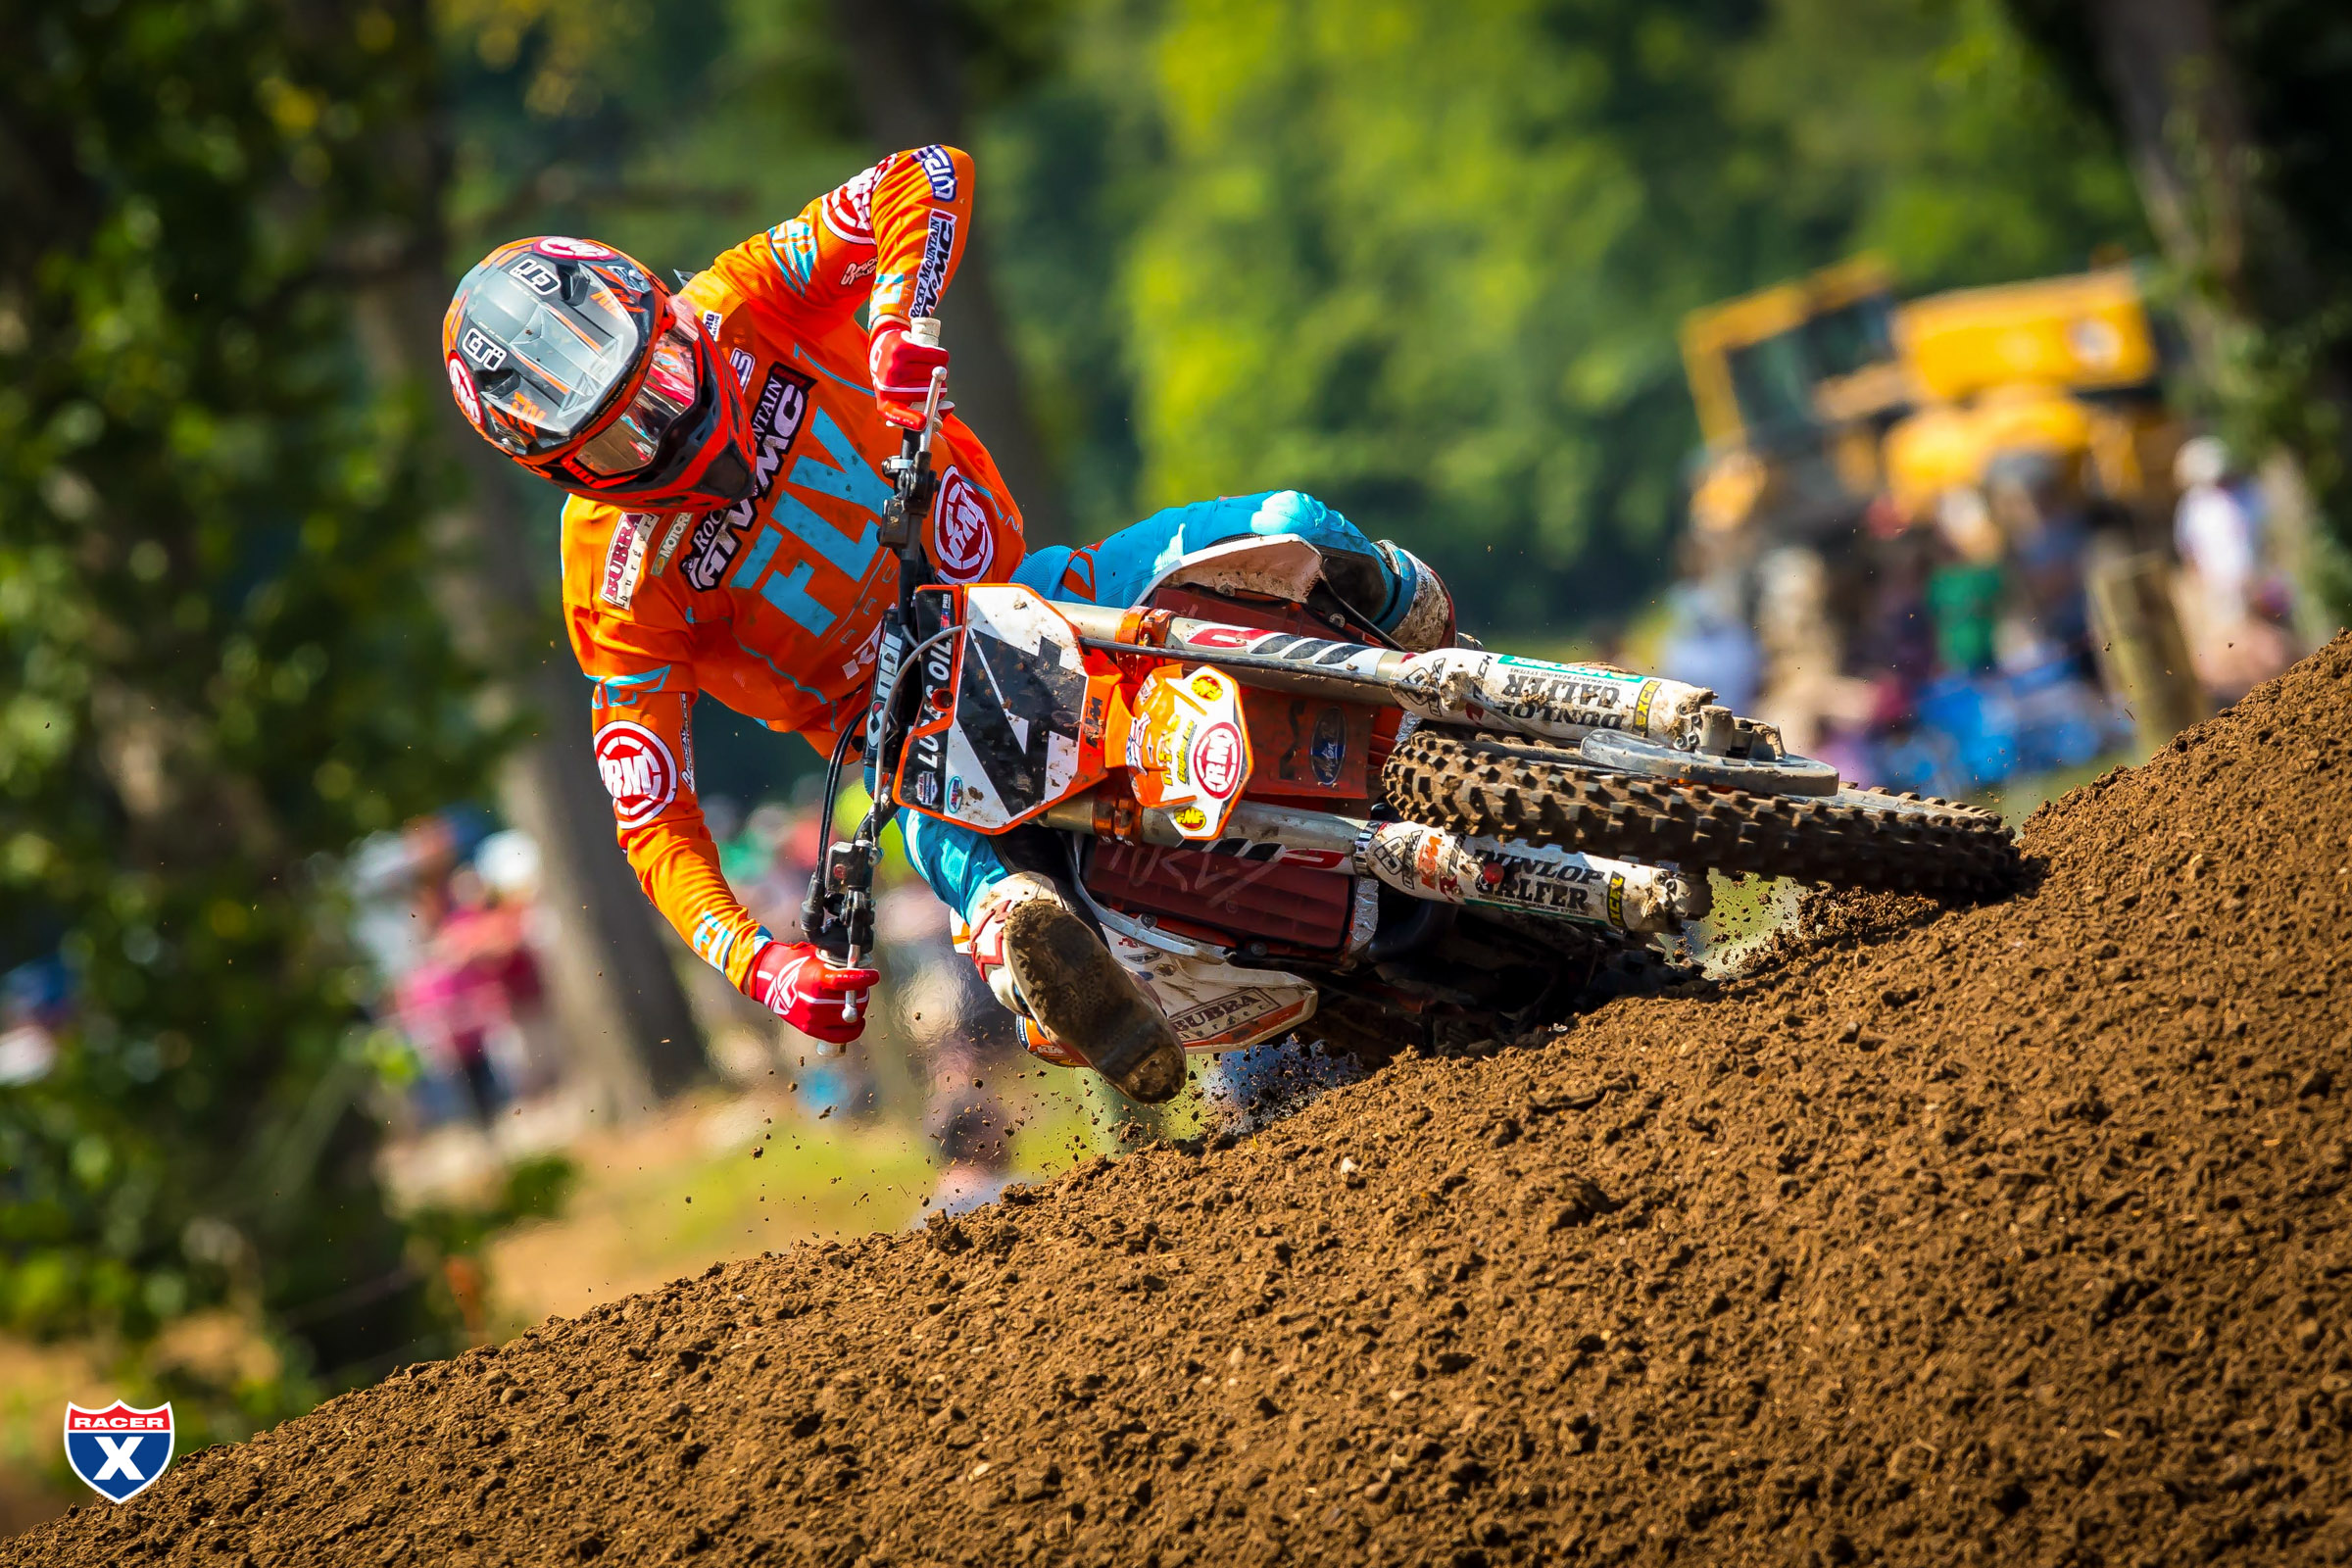 Baggett_MX17_Ironman_RS_2178